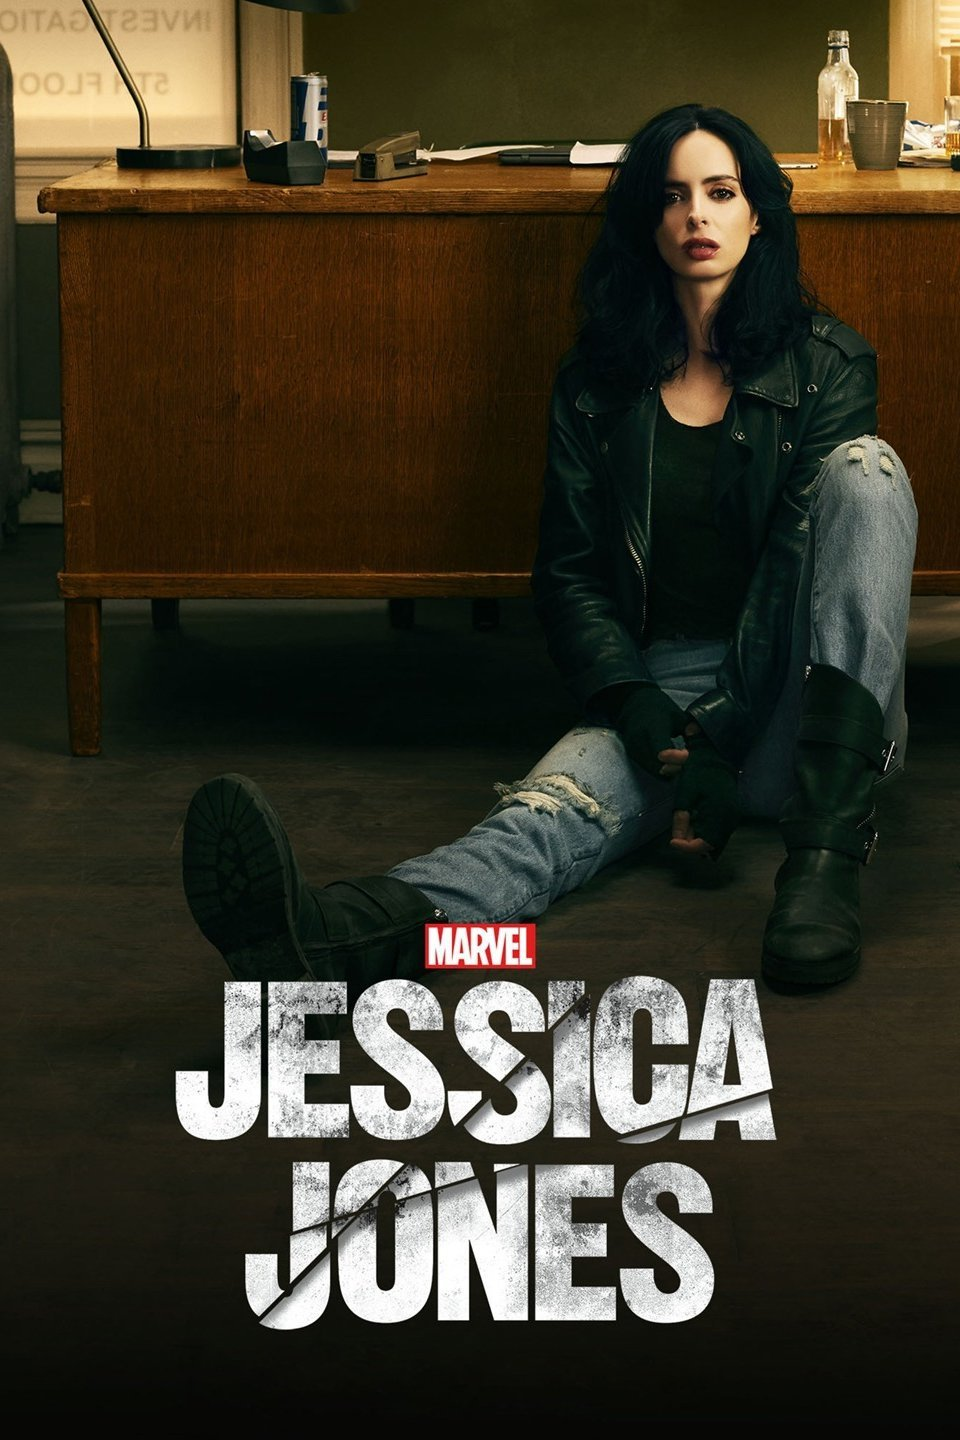 Jessica Jones Season 2 Full Download Complete 720p HEVC WEBRip